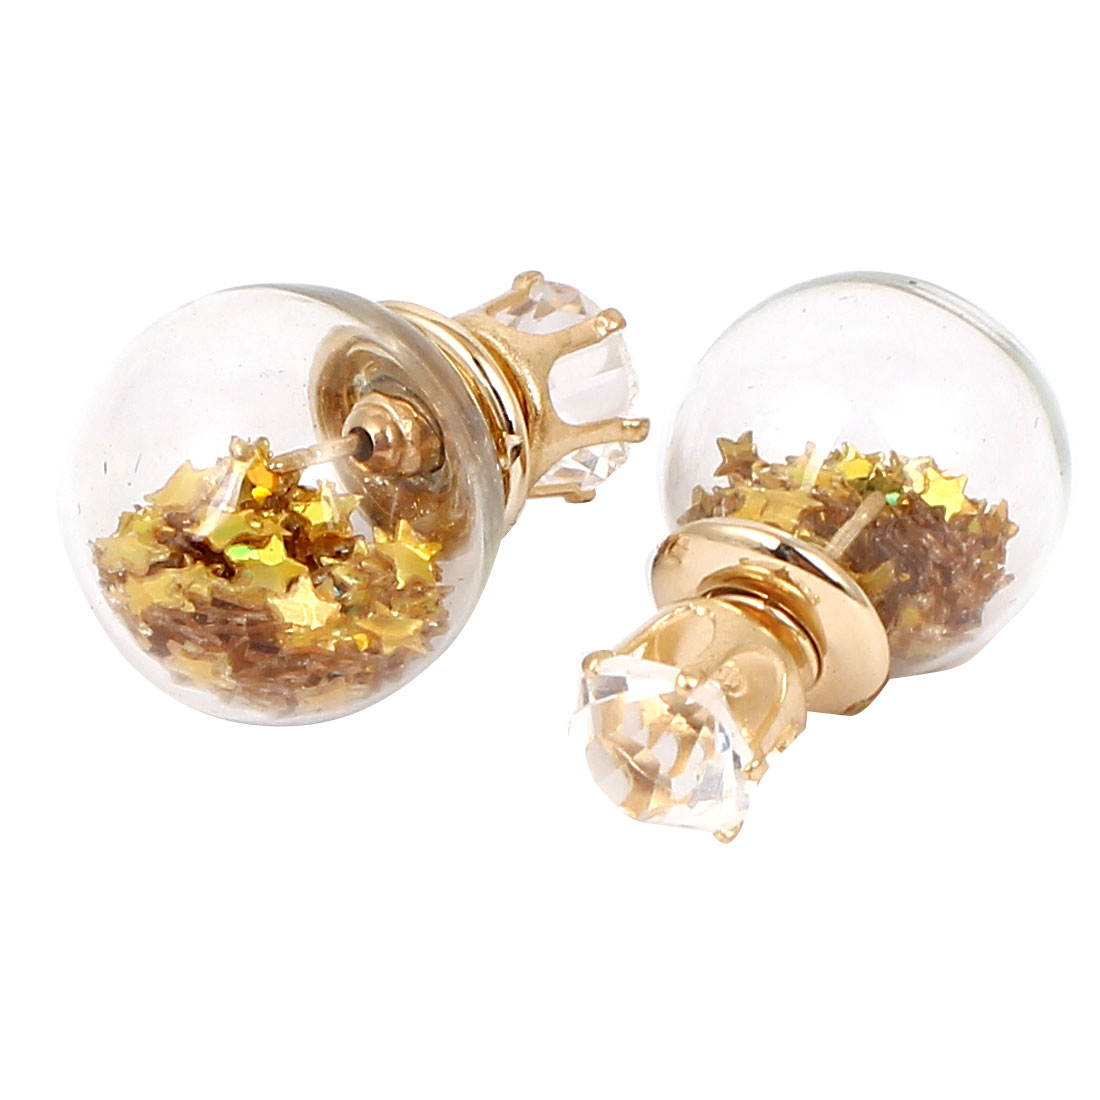 Faux Crystal Inlaid Round Bulb Design Double Side Stud Earrings Gold Tone Pair